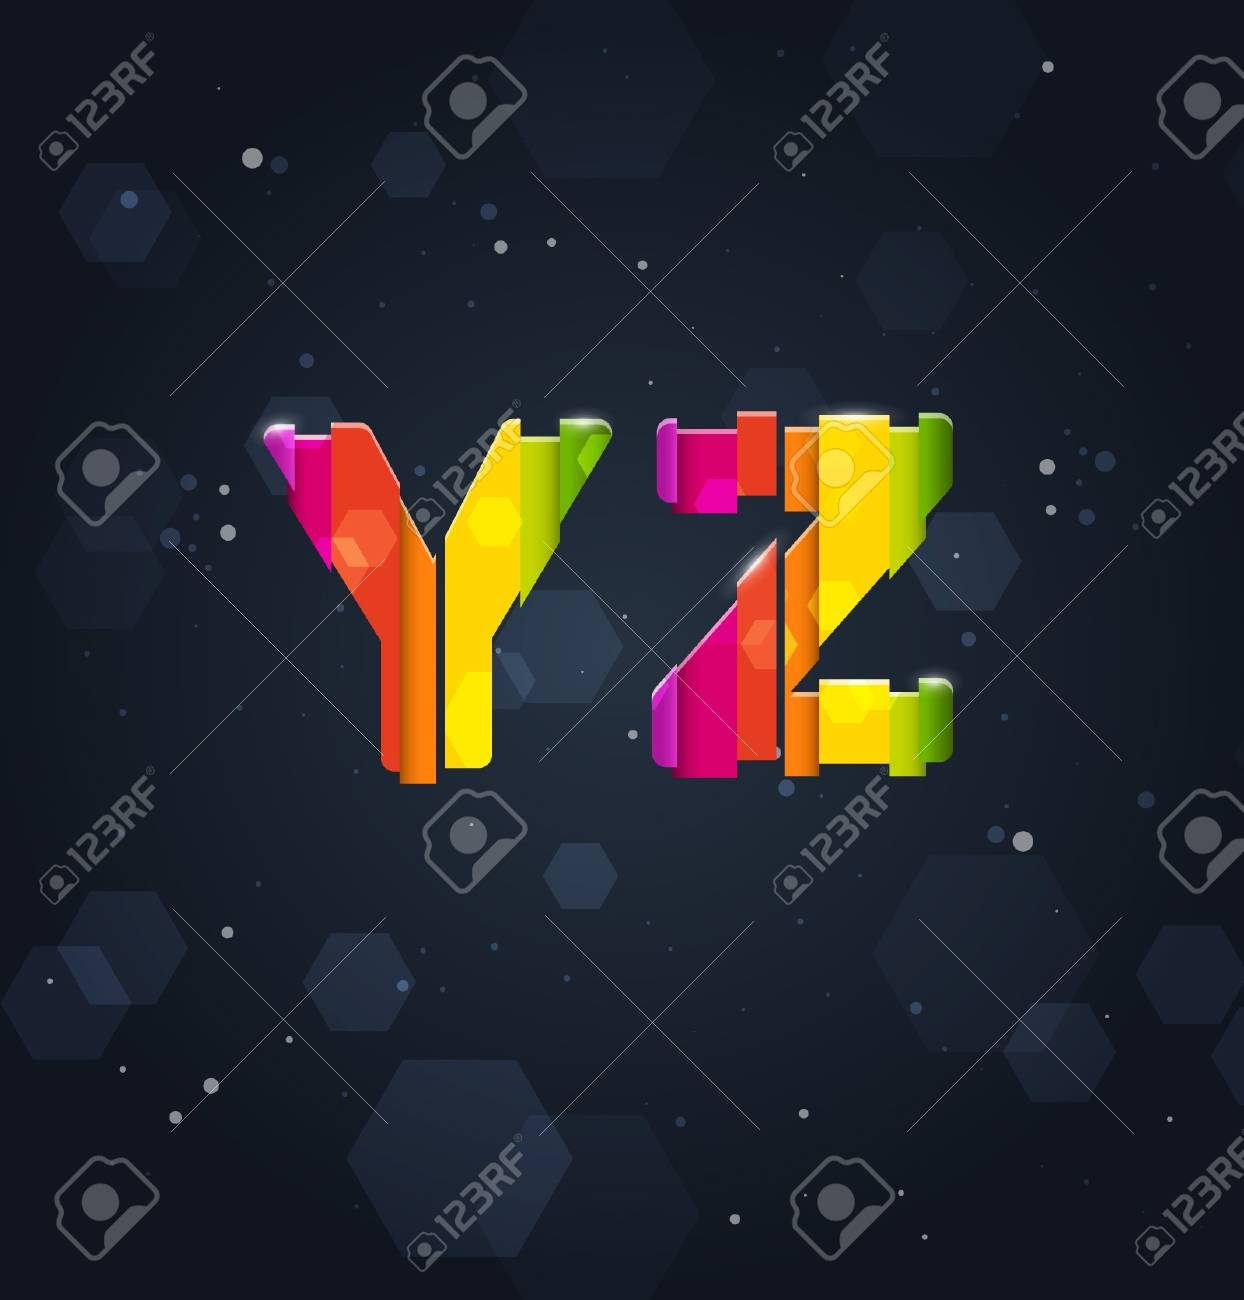 Y and Z Stock Vector - 16872966